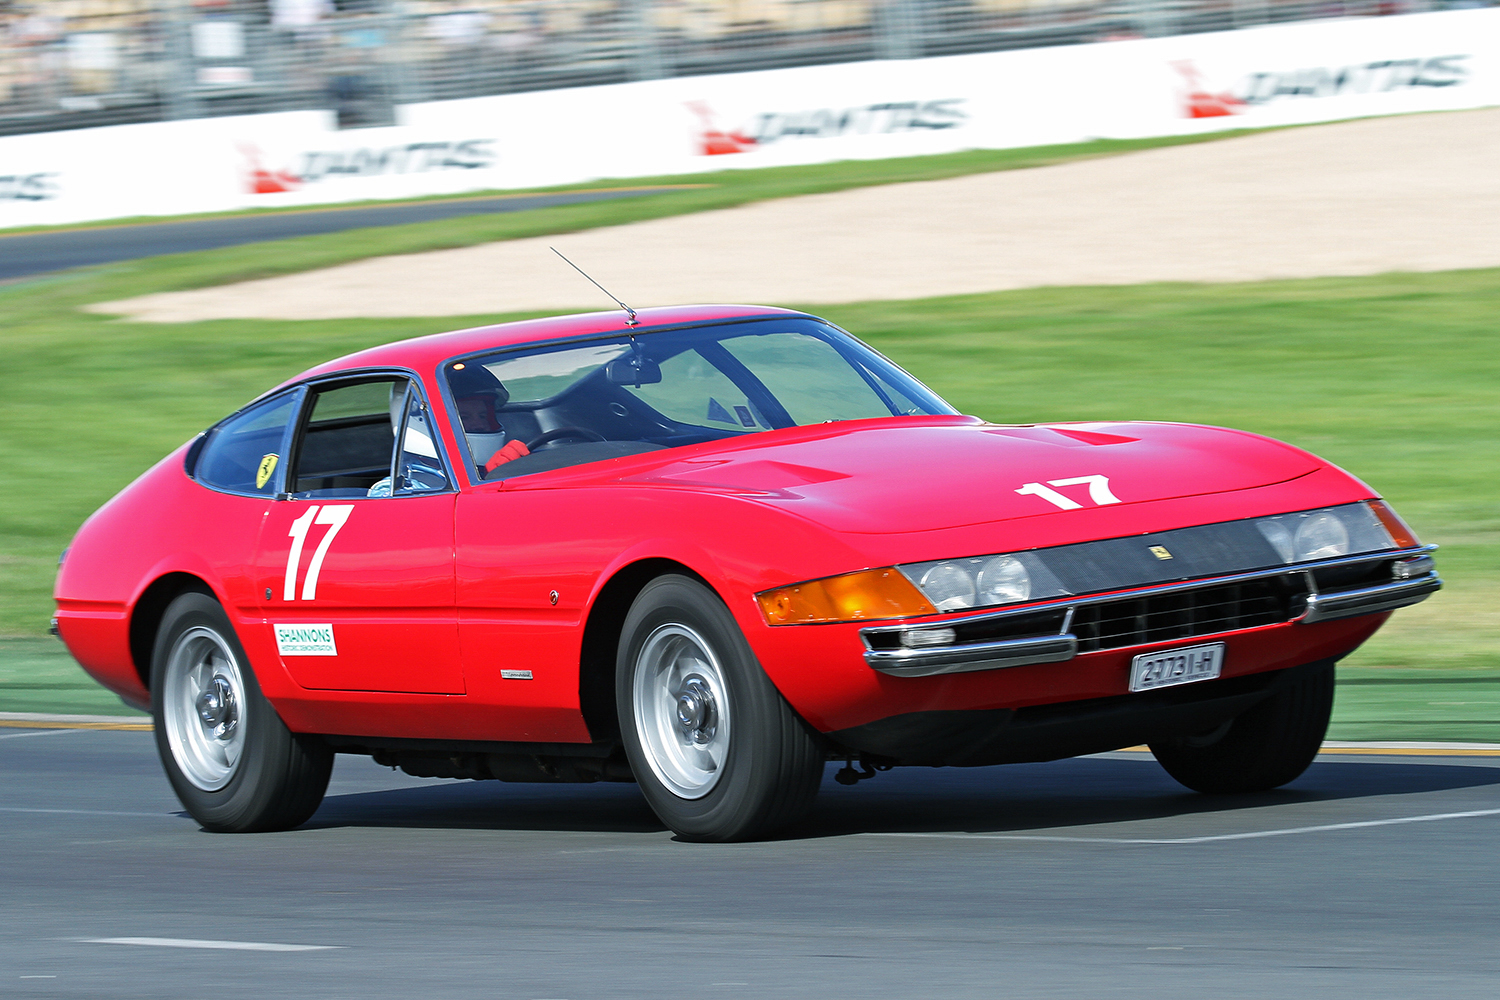 Keith Berryman demonstrates the timeless beauty of his Ferrari Daytona. PETER ELLENBOGEN